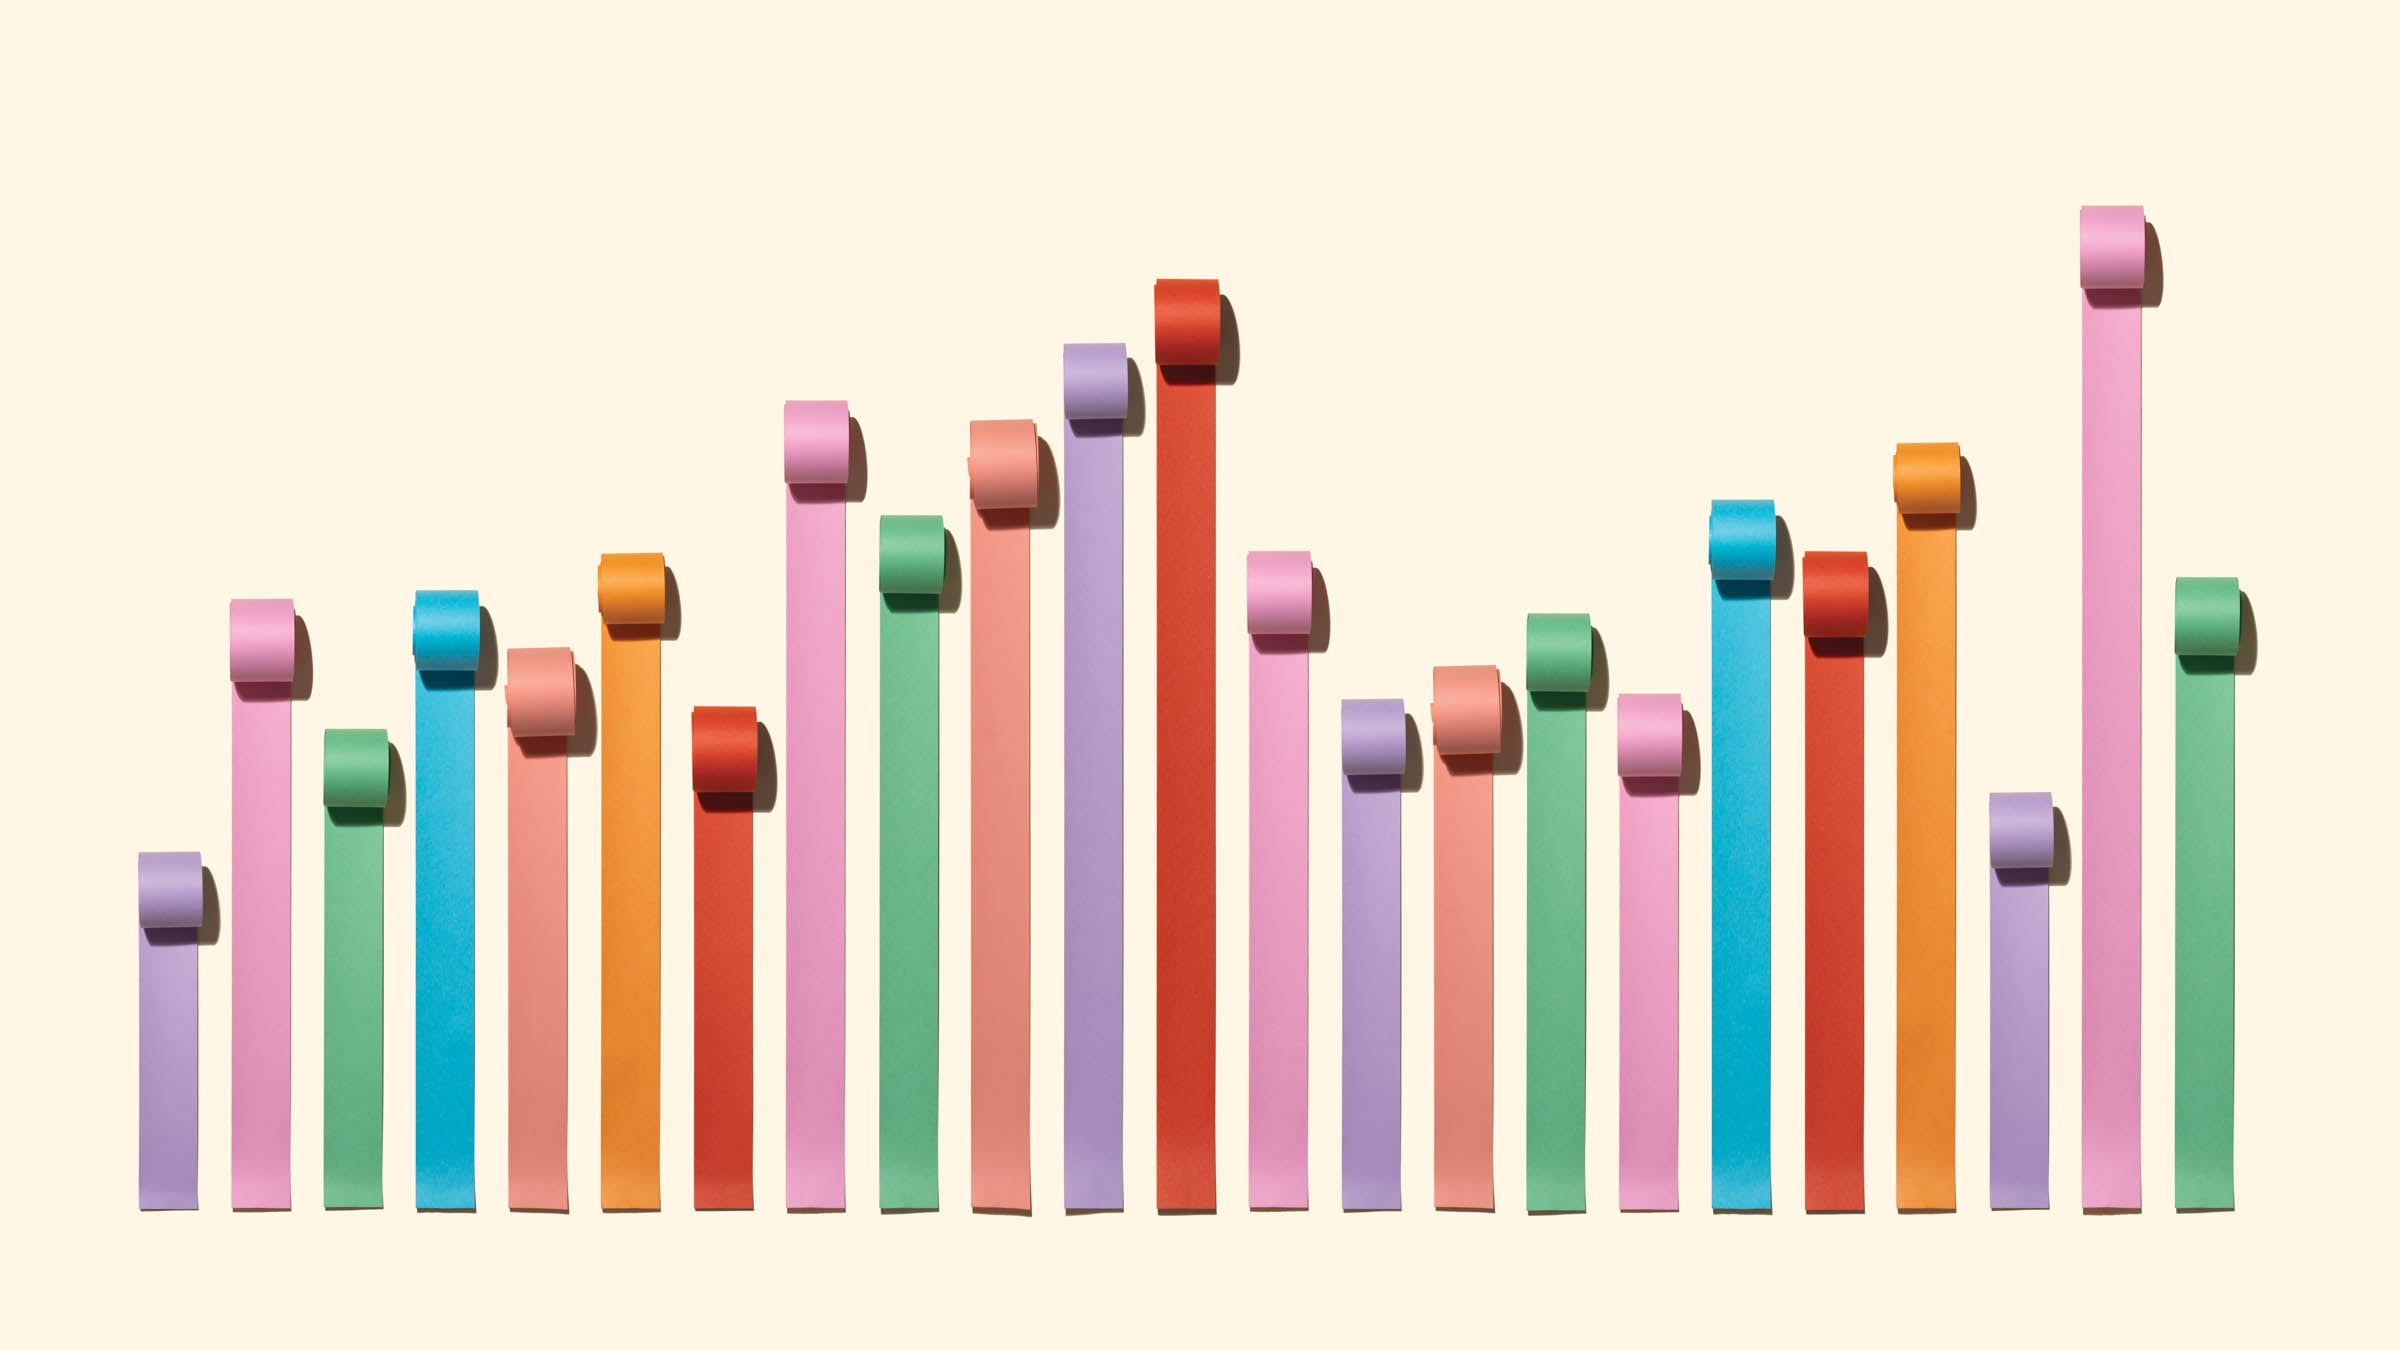 Chaos Bar Chart Made of Paper Rolls on Solid Beige Background.